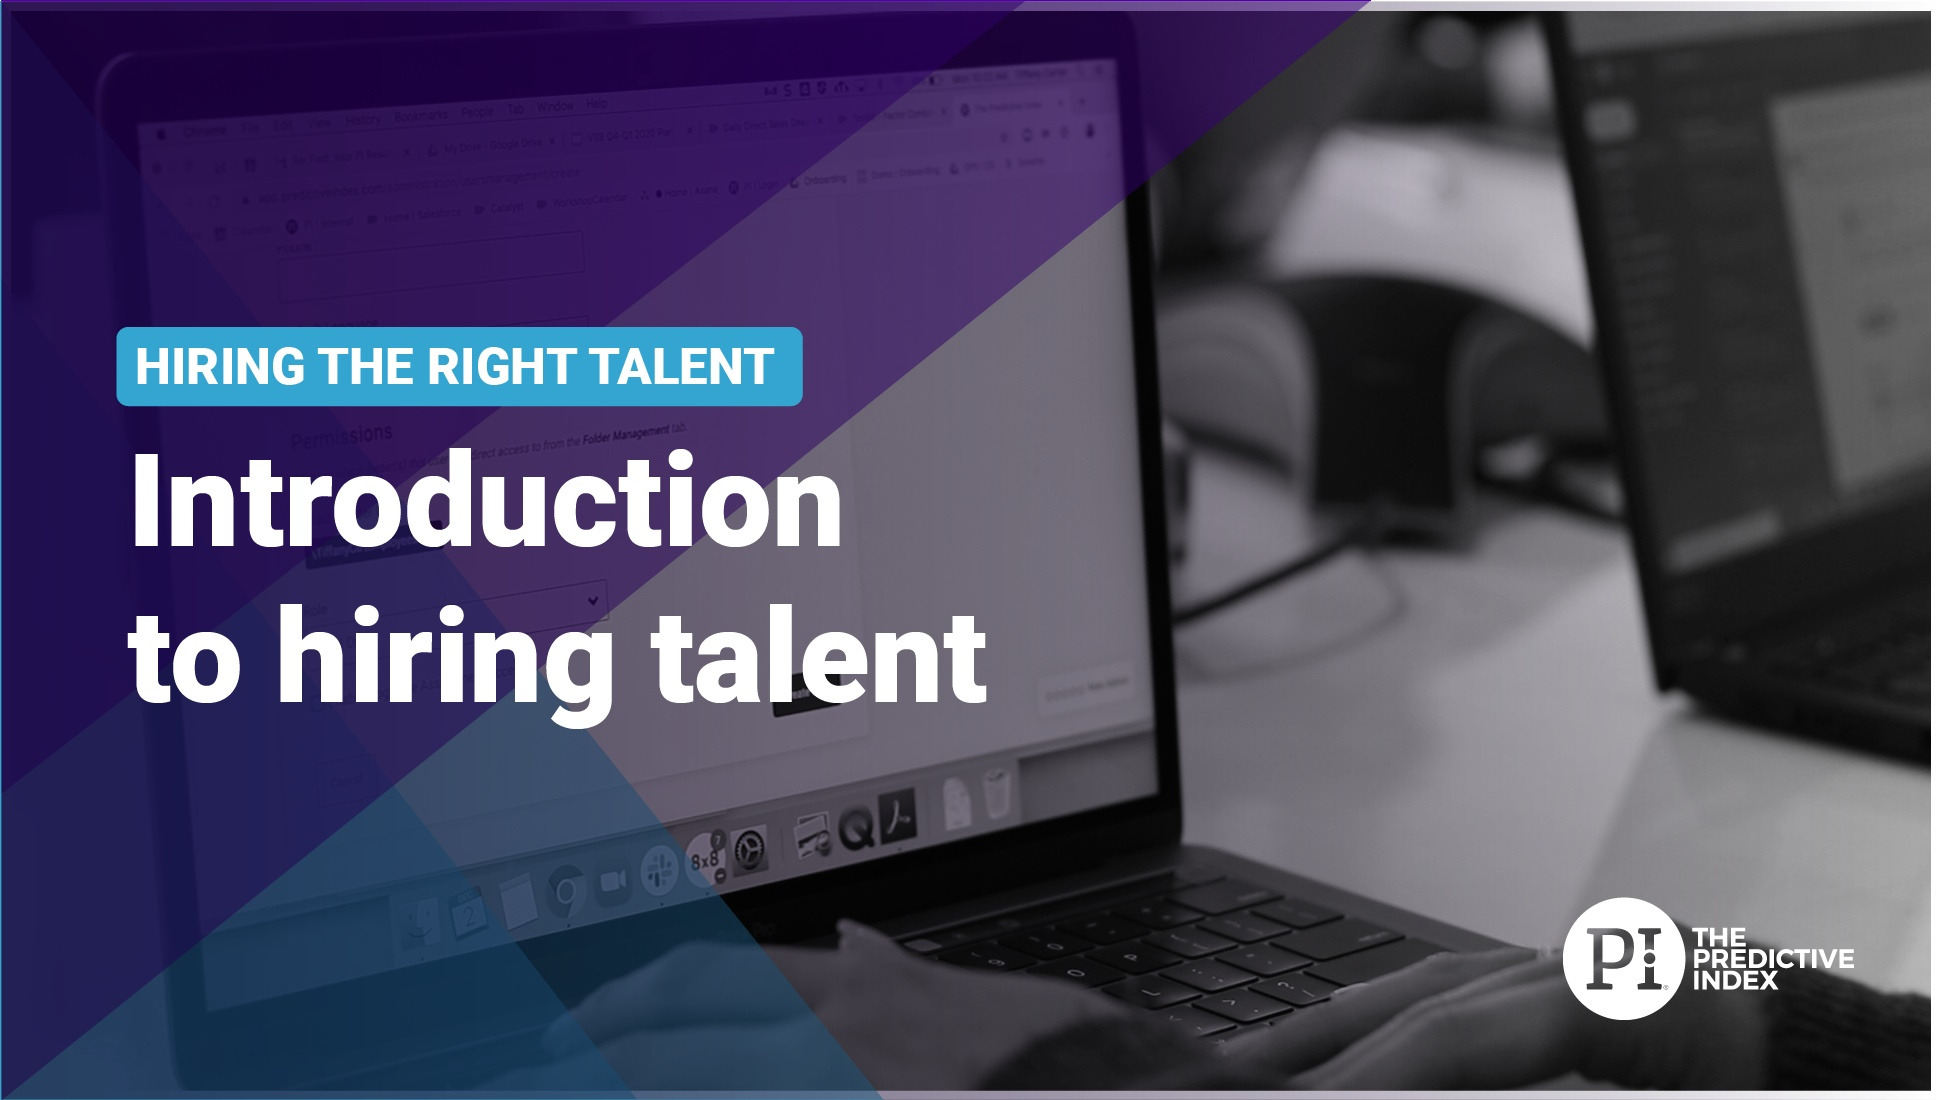 Introduction to hiring the right talent